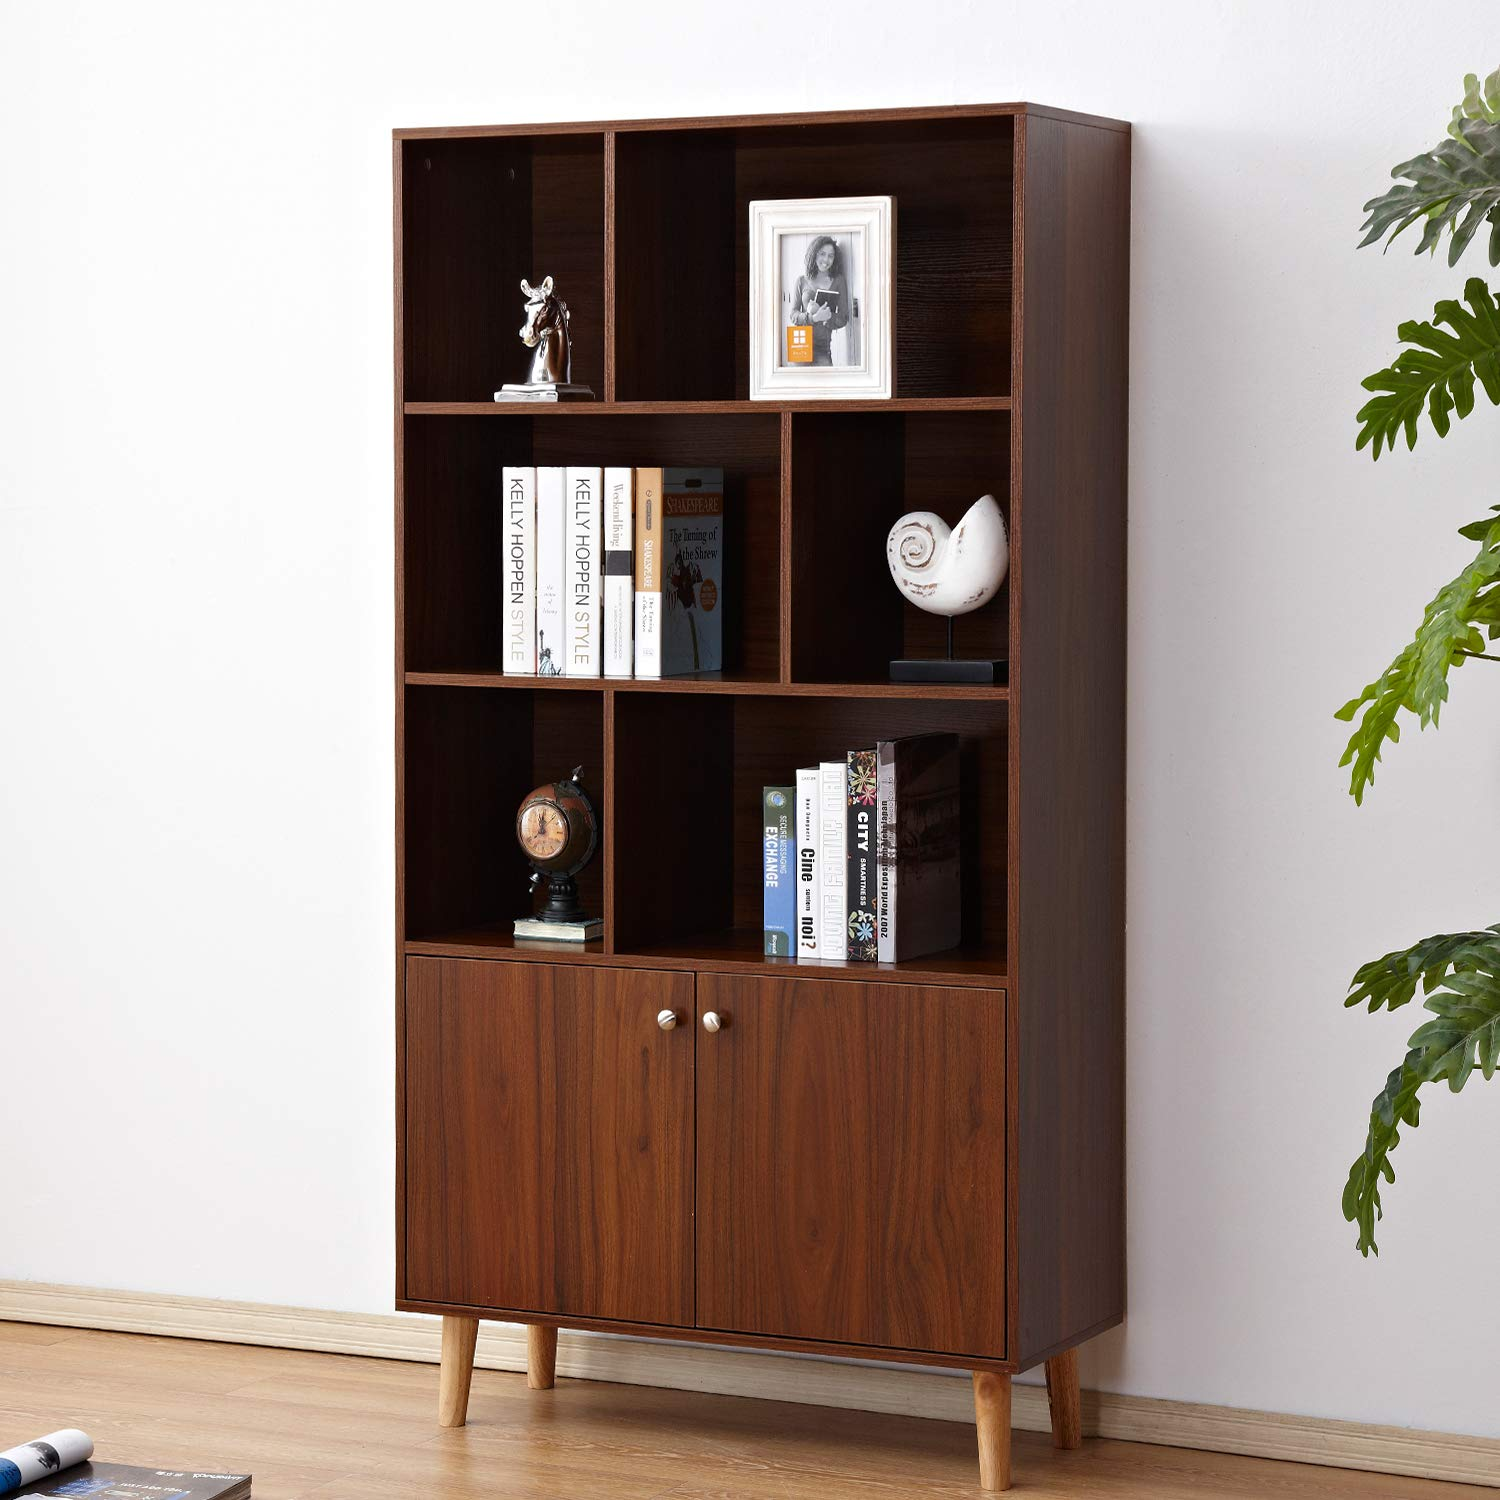 soges Premuim Modern Display Storage Cabinet 67.4 inches High Free Standing Wood Bookshelf Home Office Cabinet, Walnut HHGZ006-WN by soges